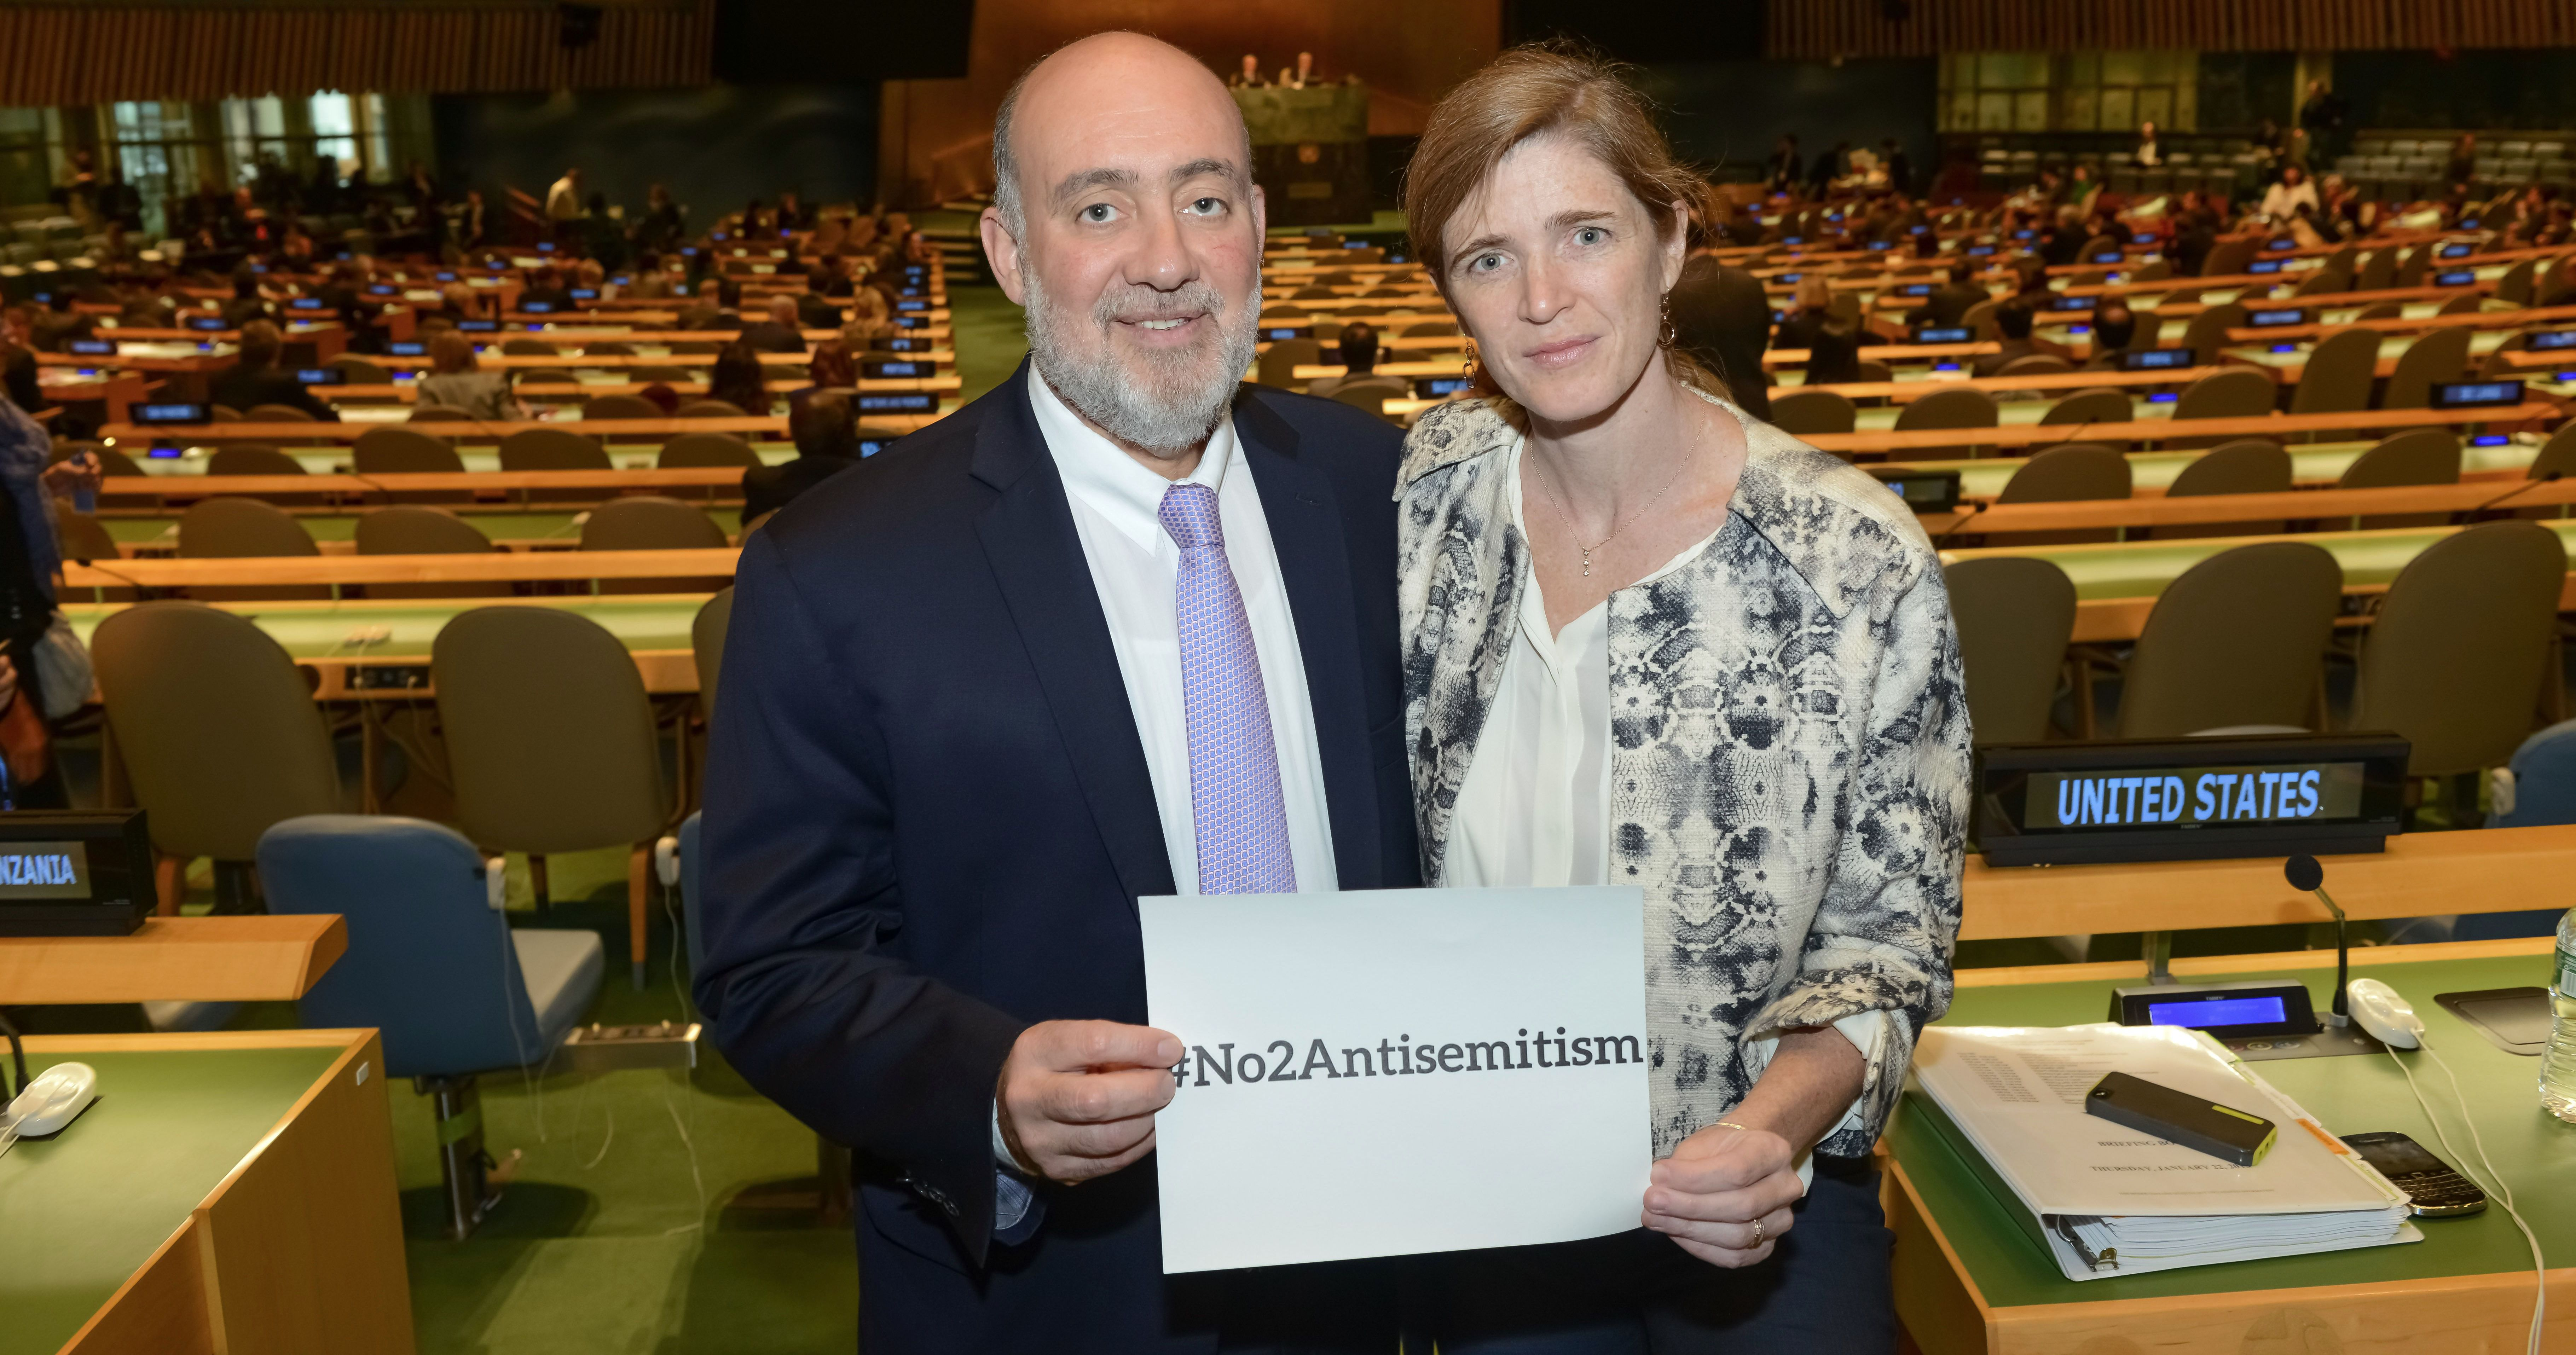 Ron Prosor, Permanent Representative of Israel to the UN and Samantha Power, Permanent Representative of the United States to the UN.